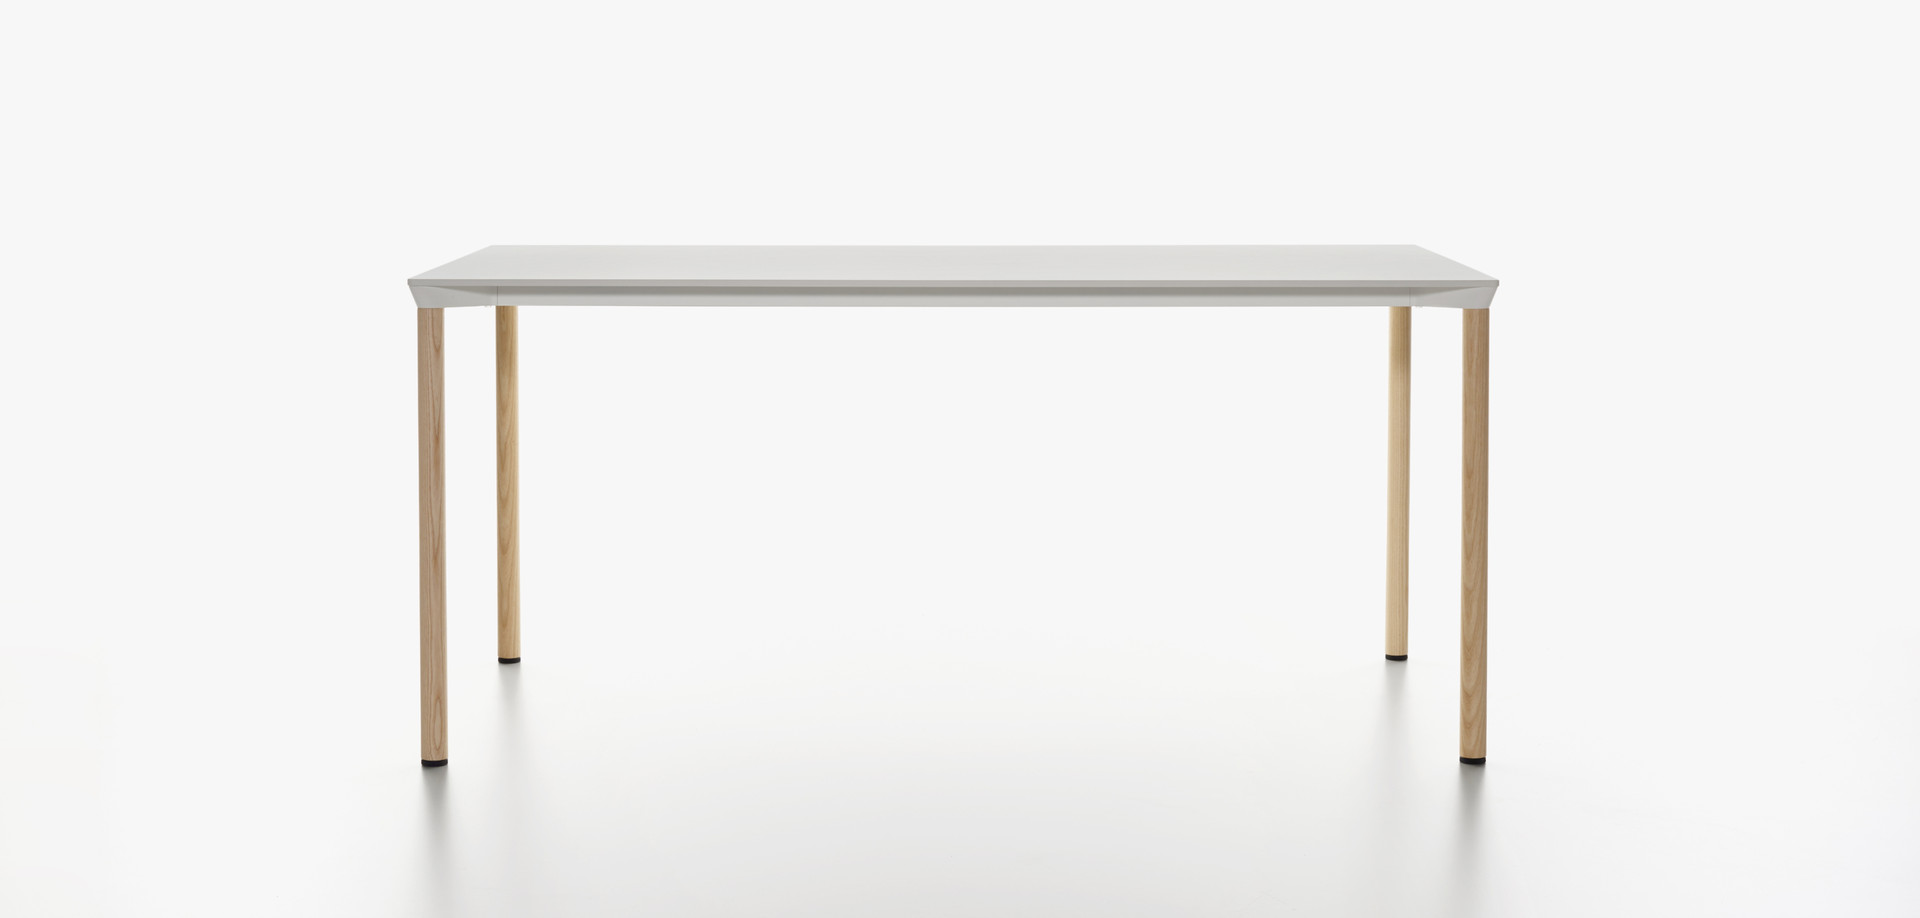 Plank - MONZA table rectangular, white HPL table top, natural ash legs